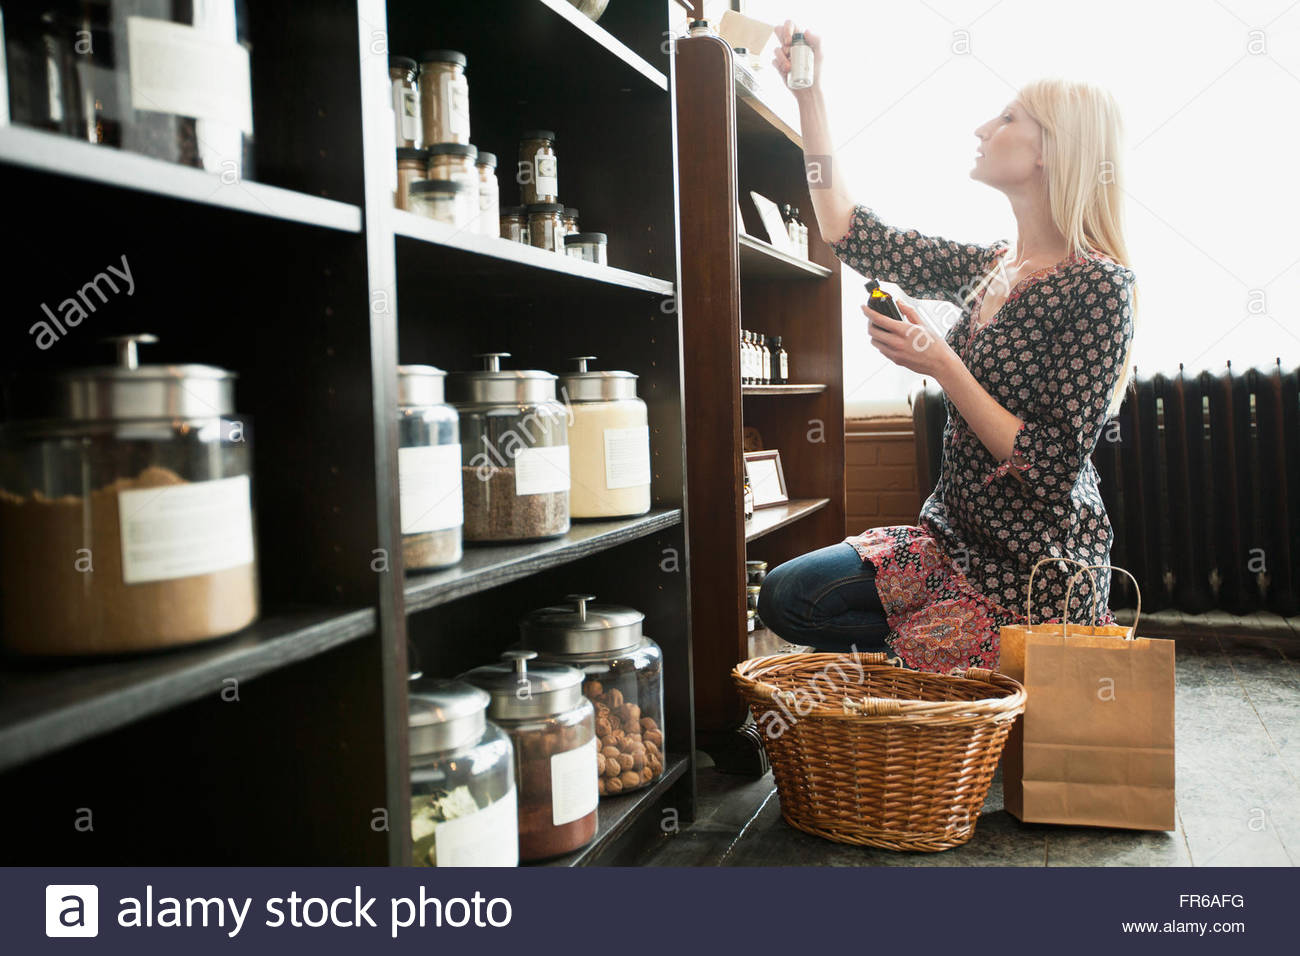 customer choosing spices in retail spice store - Stock Image